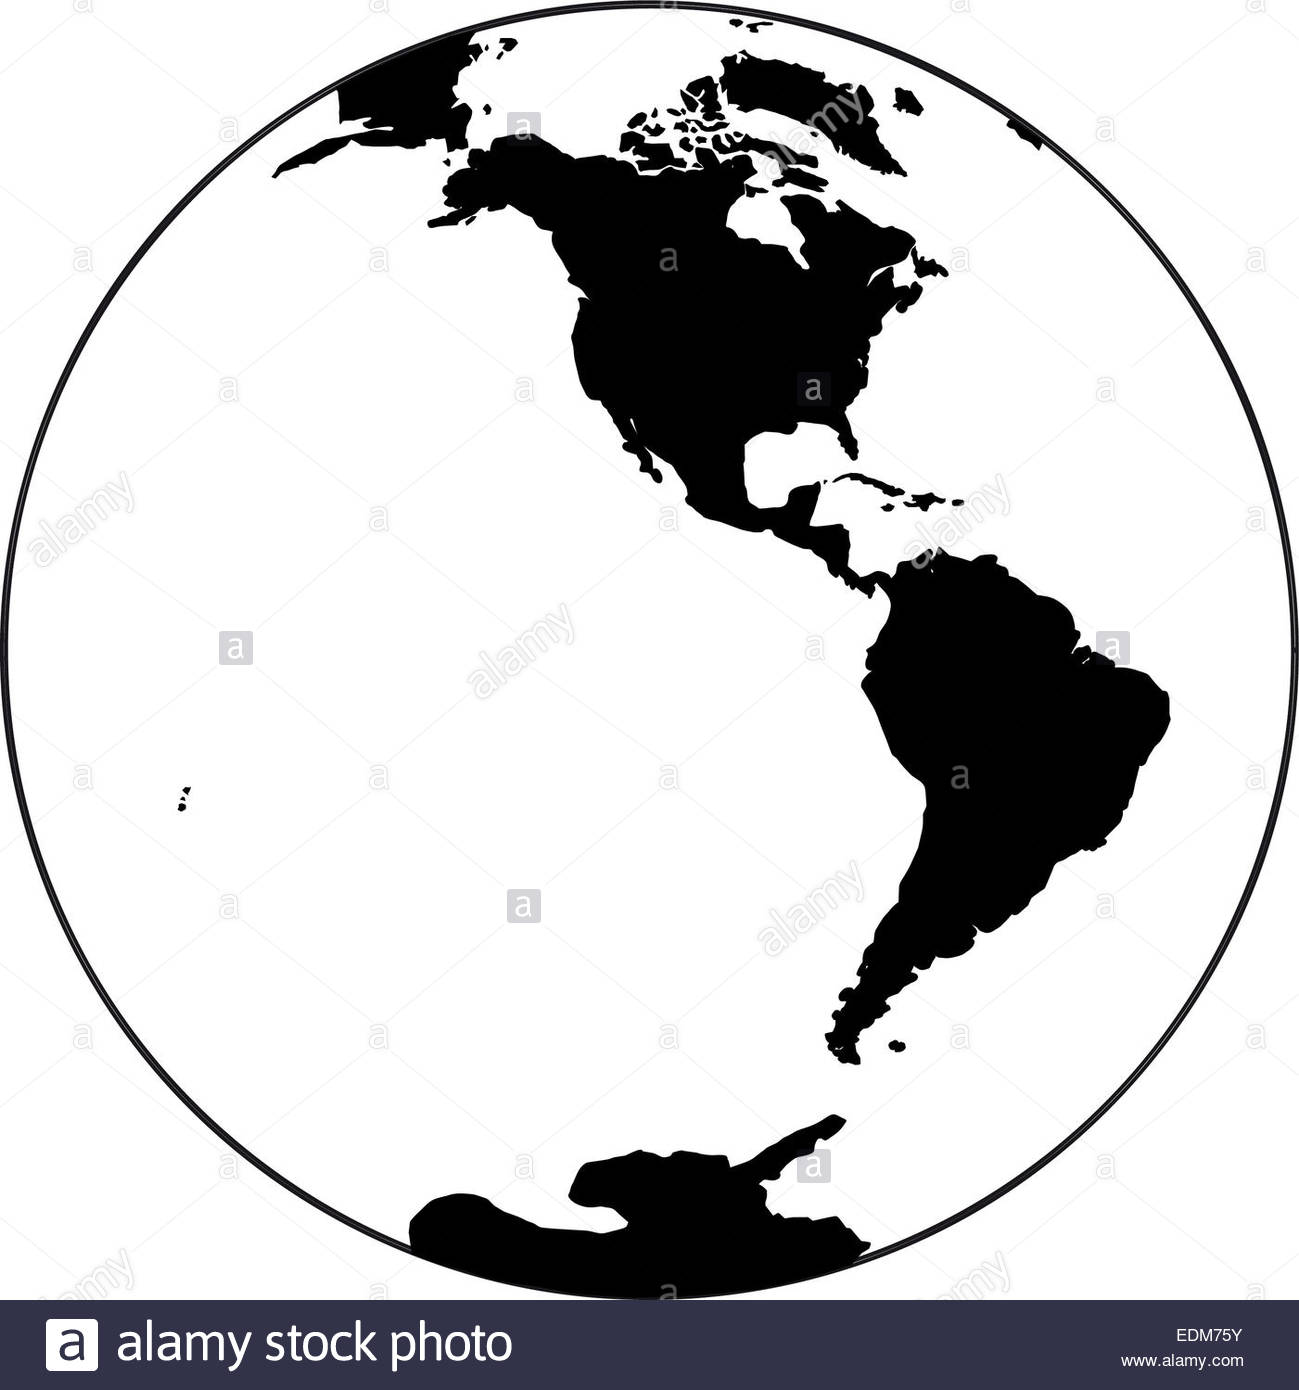 1299x1390 Beautiful Black And White Icon Planet Earth Stock Photo, Royalty